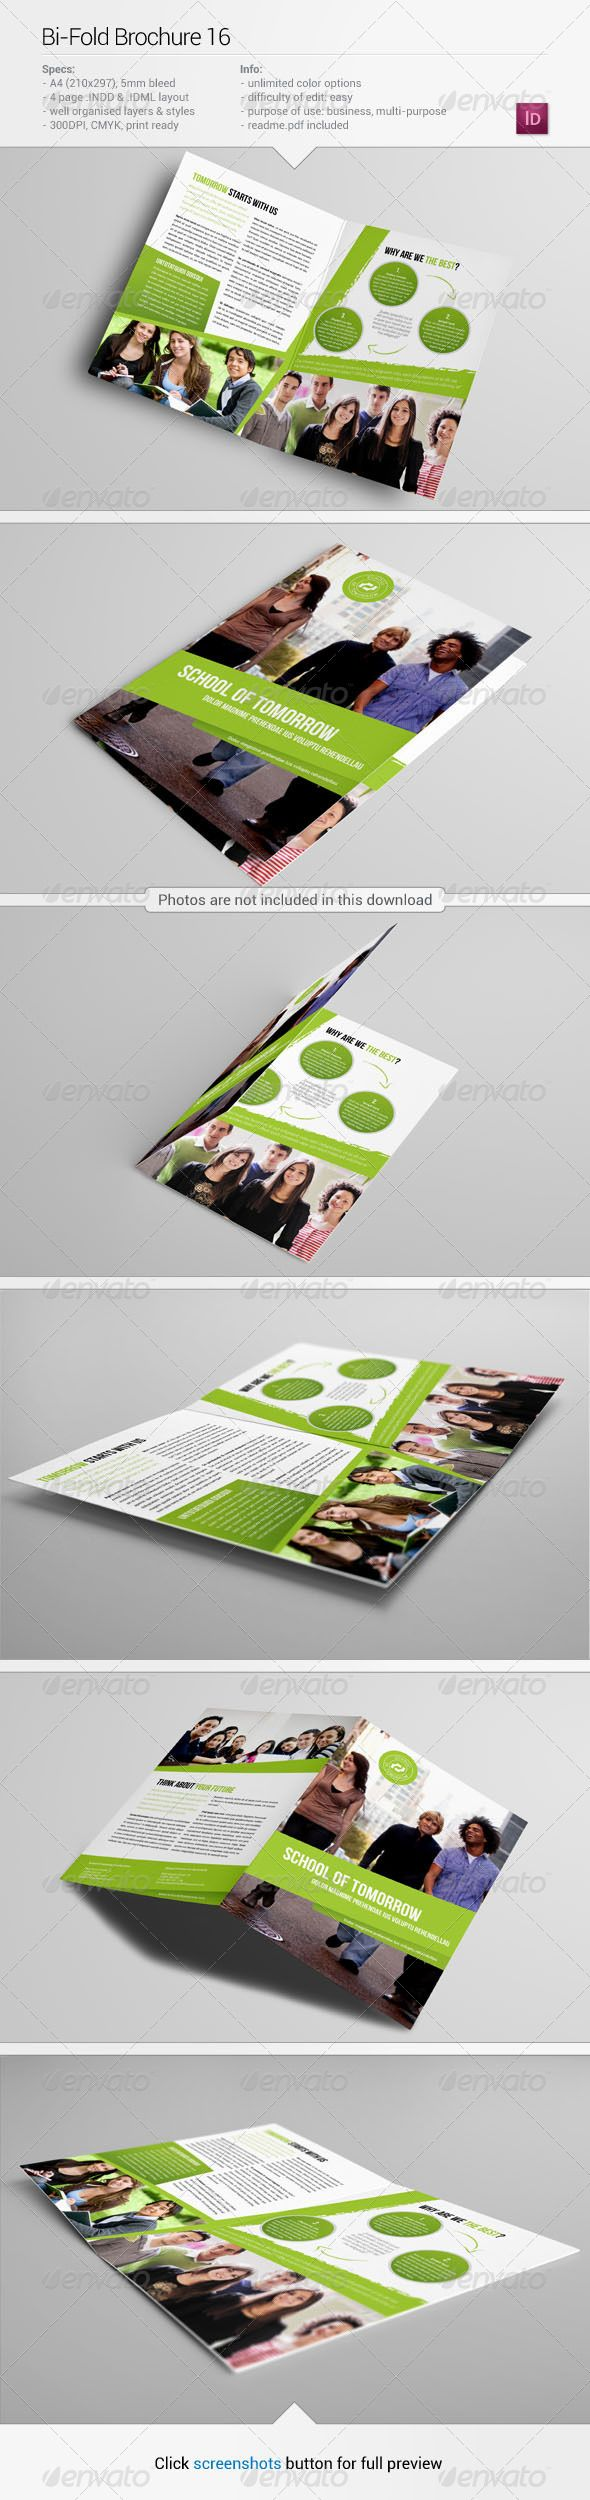 39 best パンフレット images on pinterest brochure template